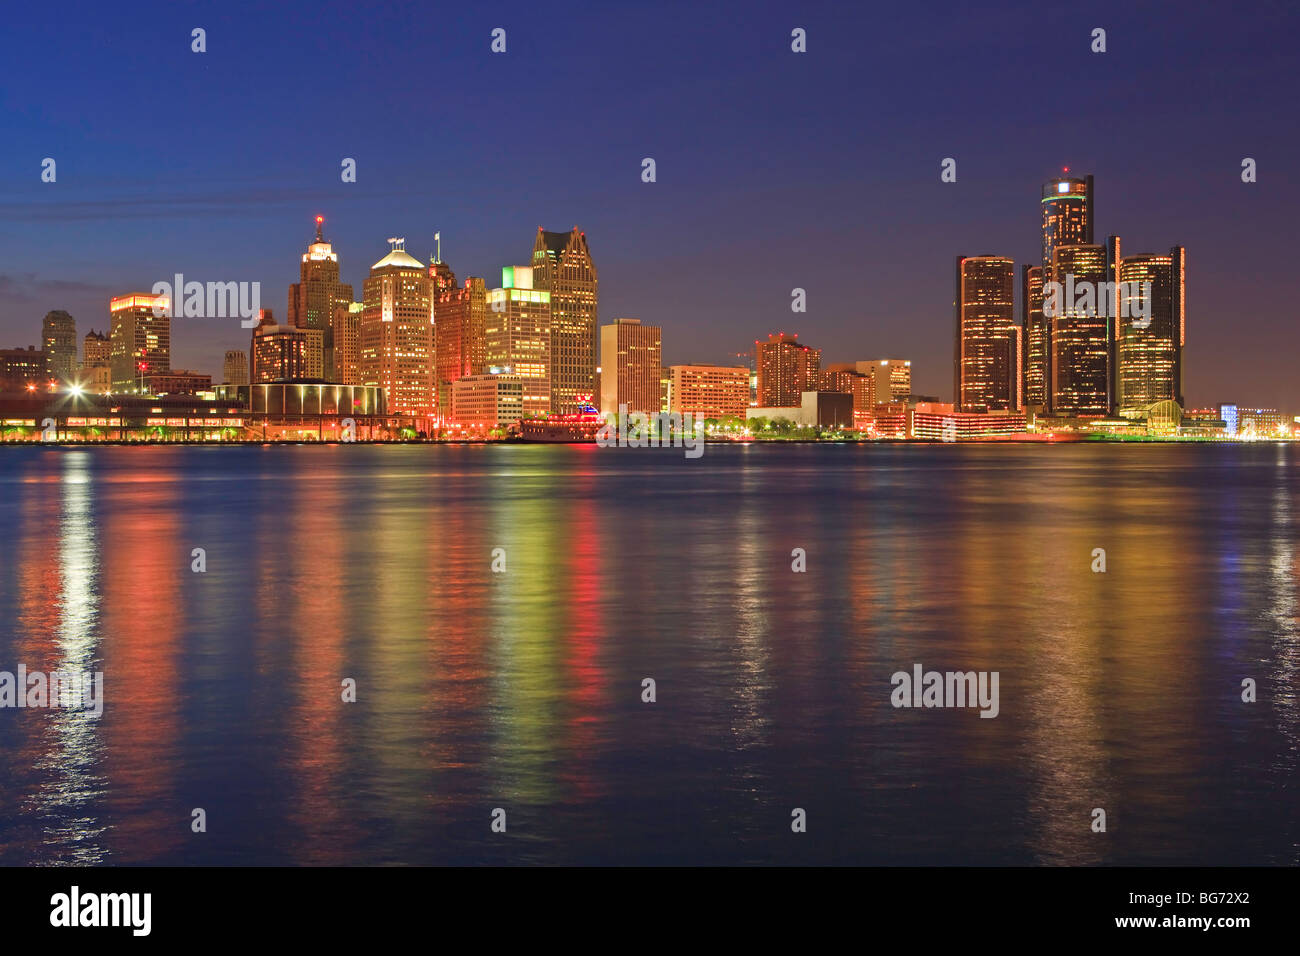 Skyline of Detroit, Michigan, USA seen from the city of Windsor, Ontario, Canada at dusk. - Stock Image